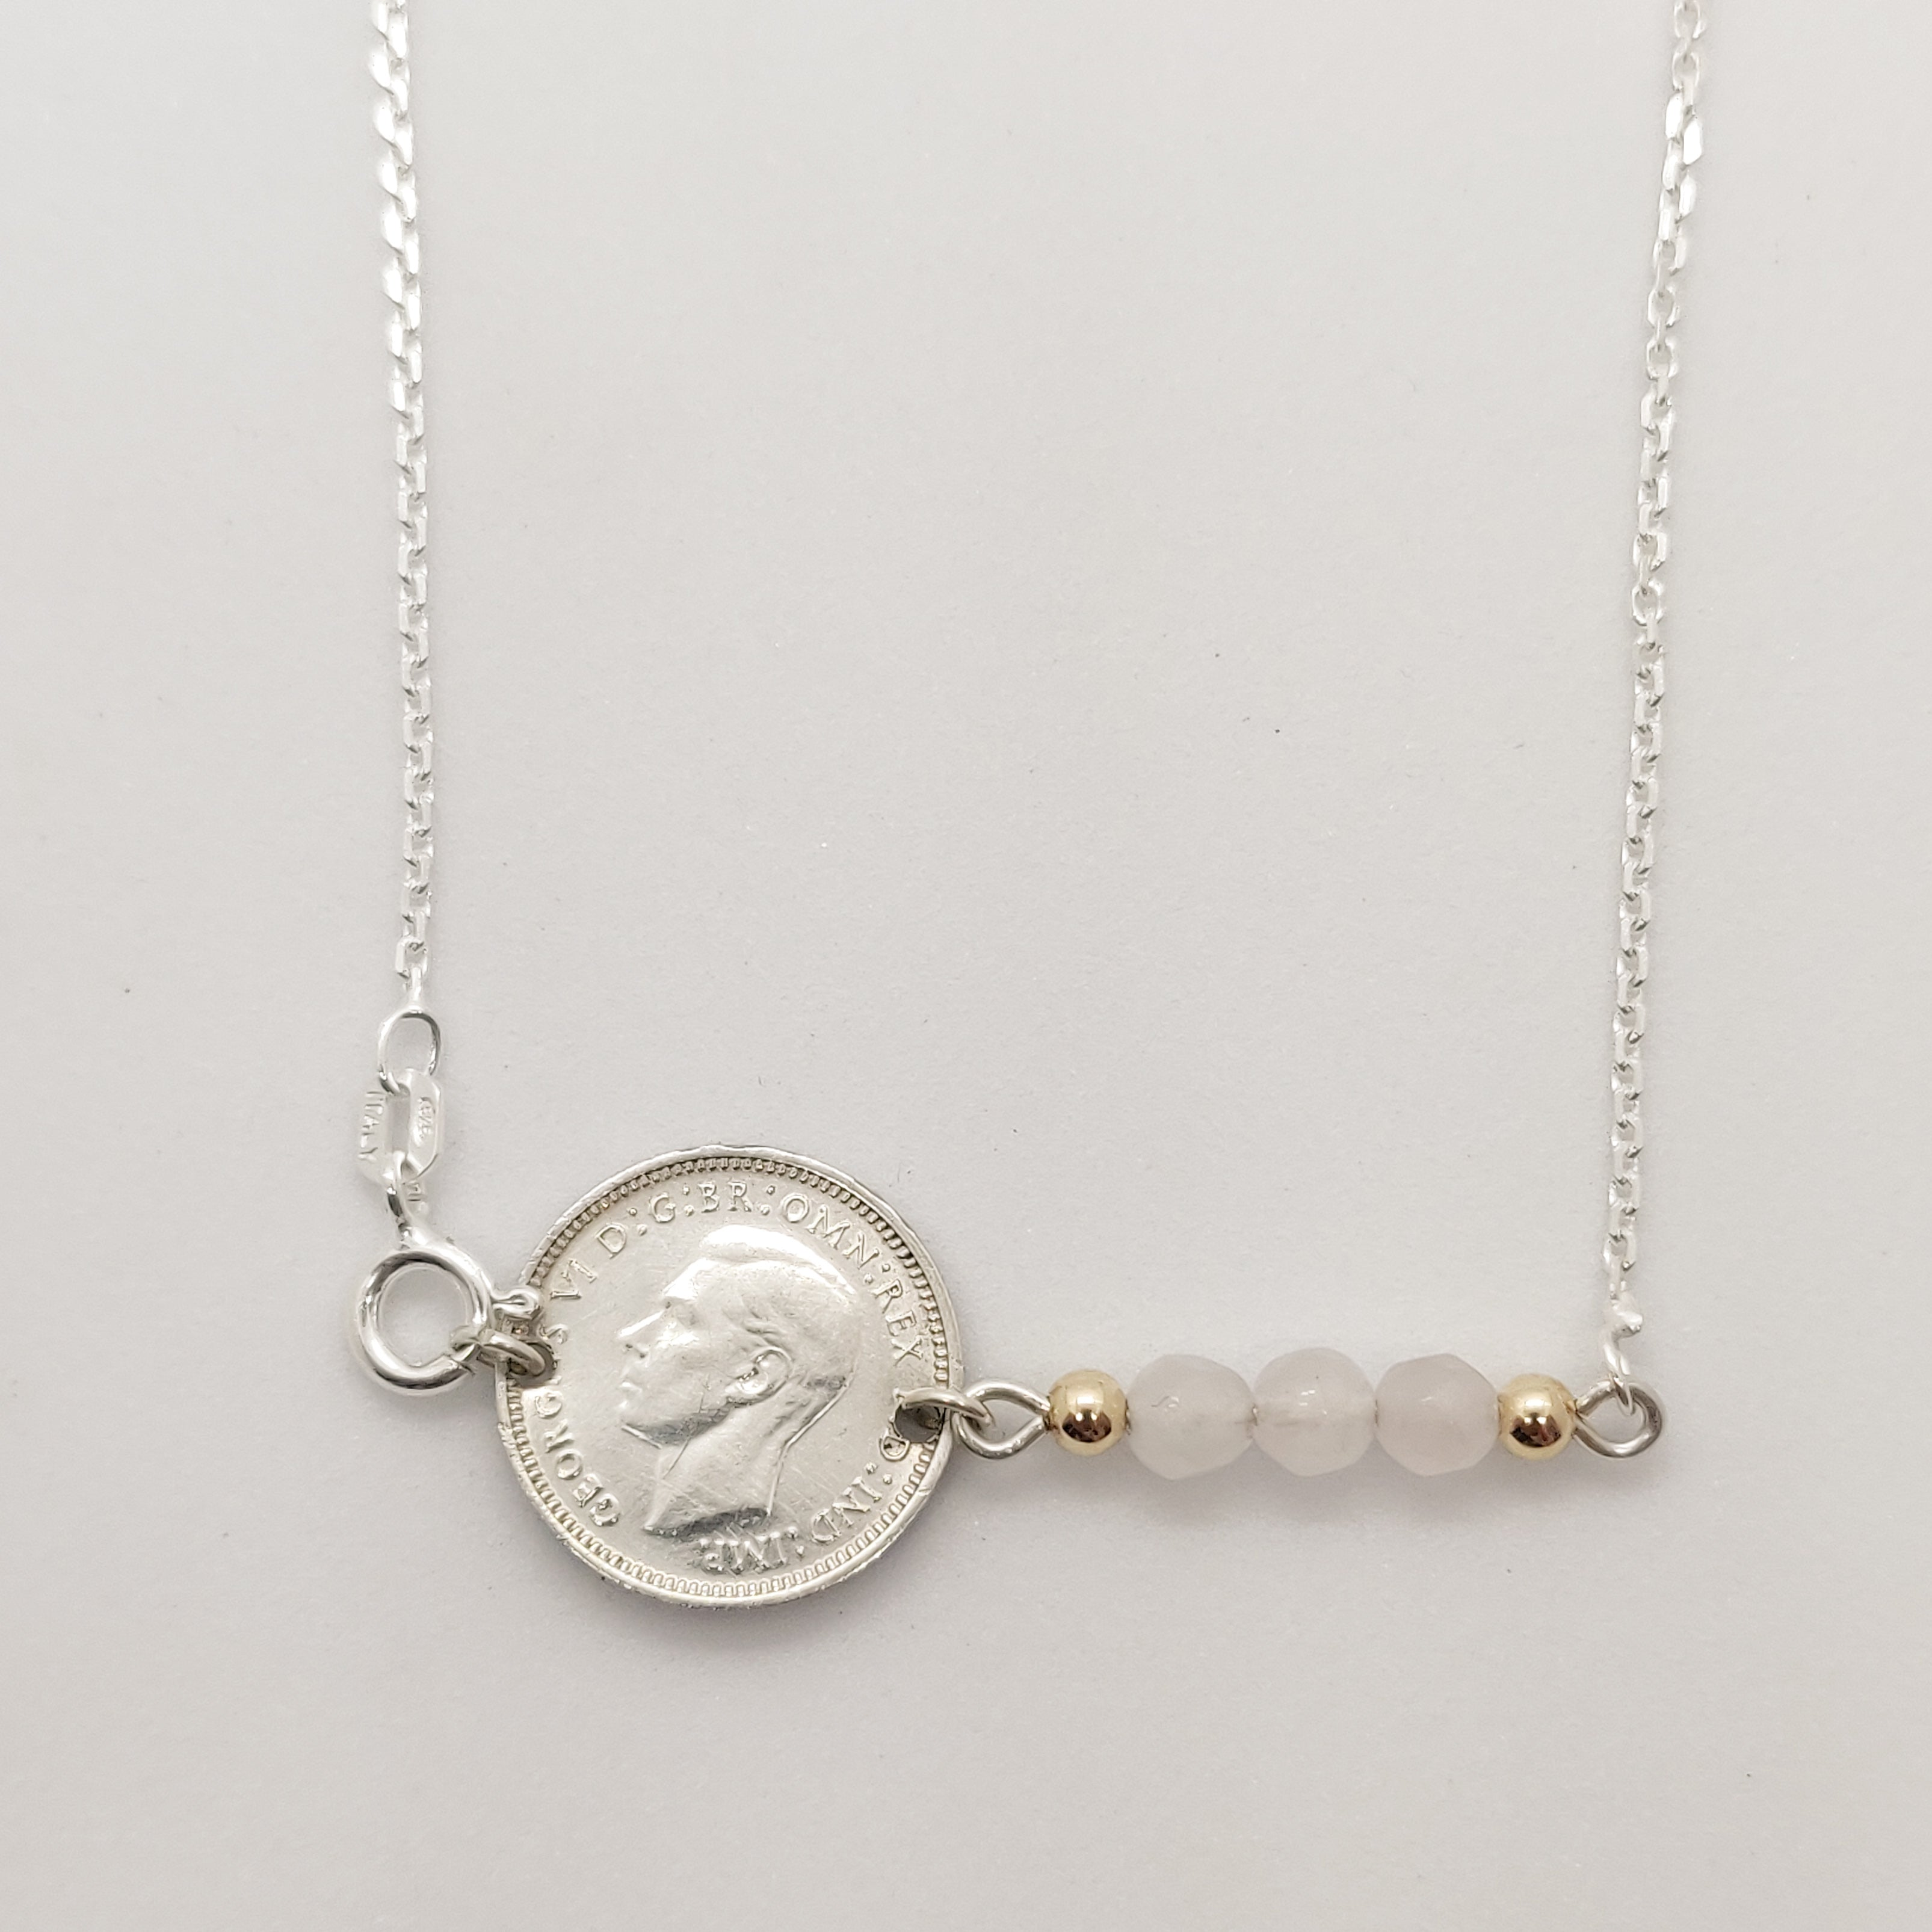 Threepence Rose Quartz Coin Necklace